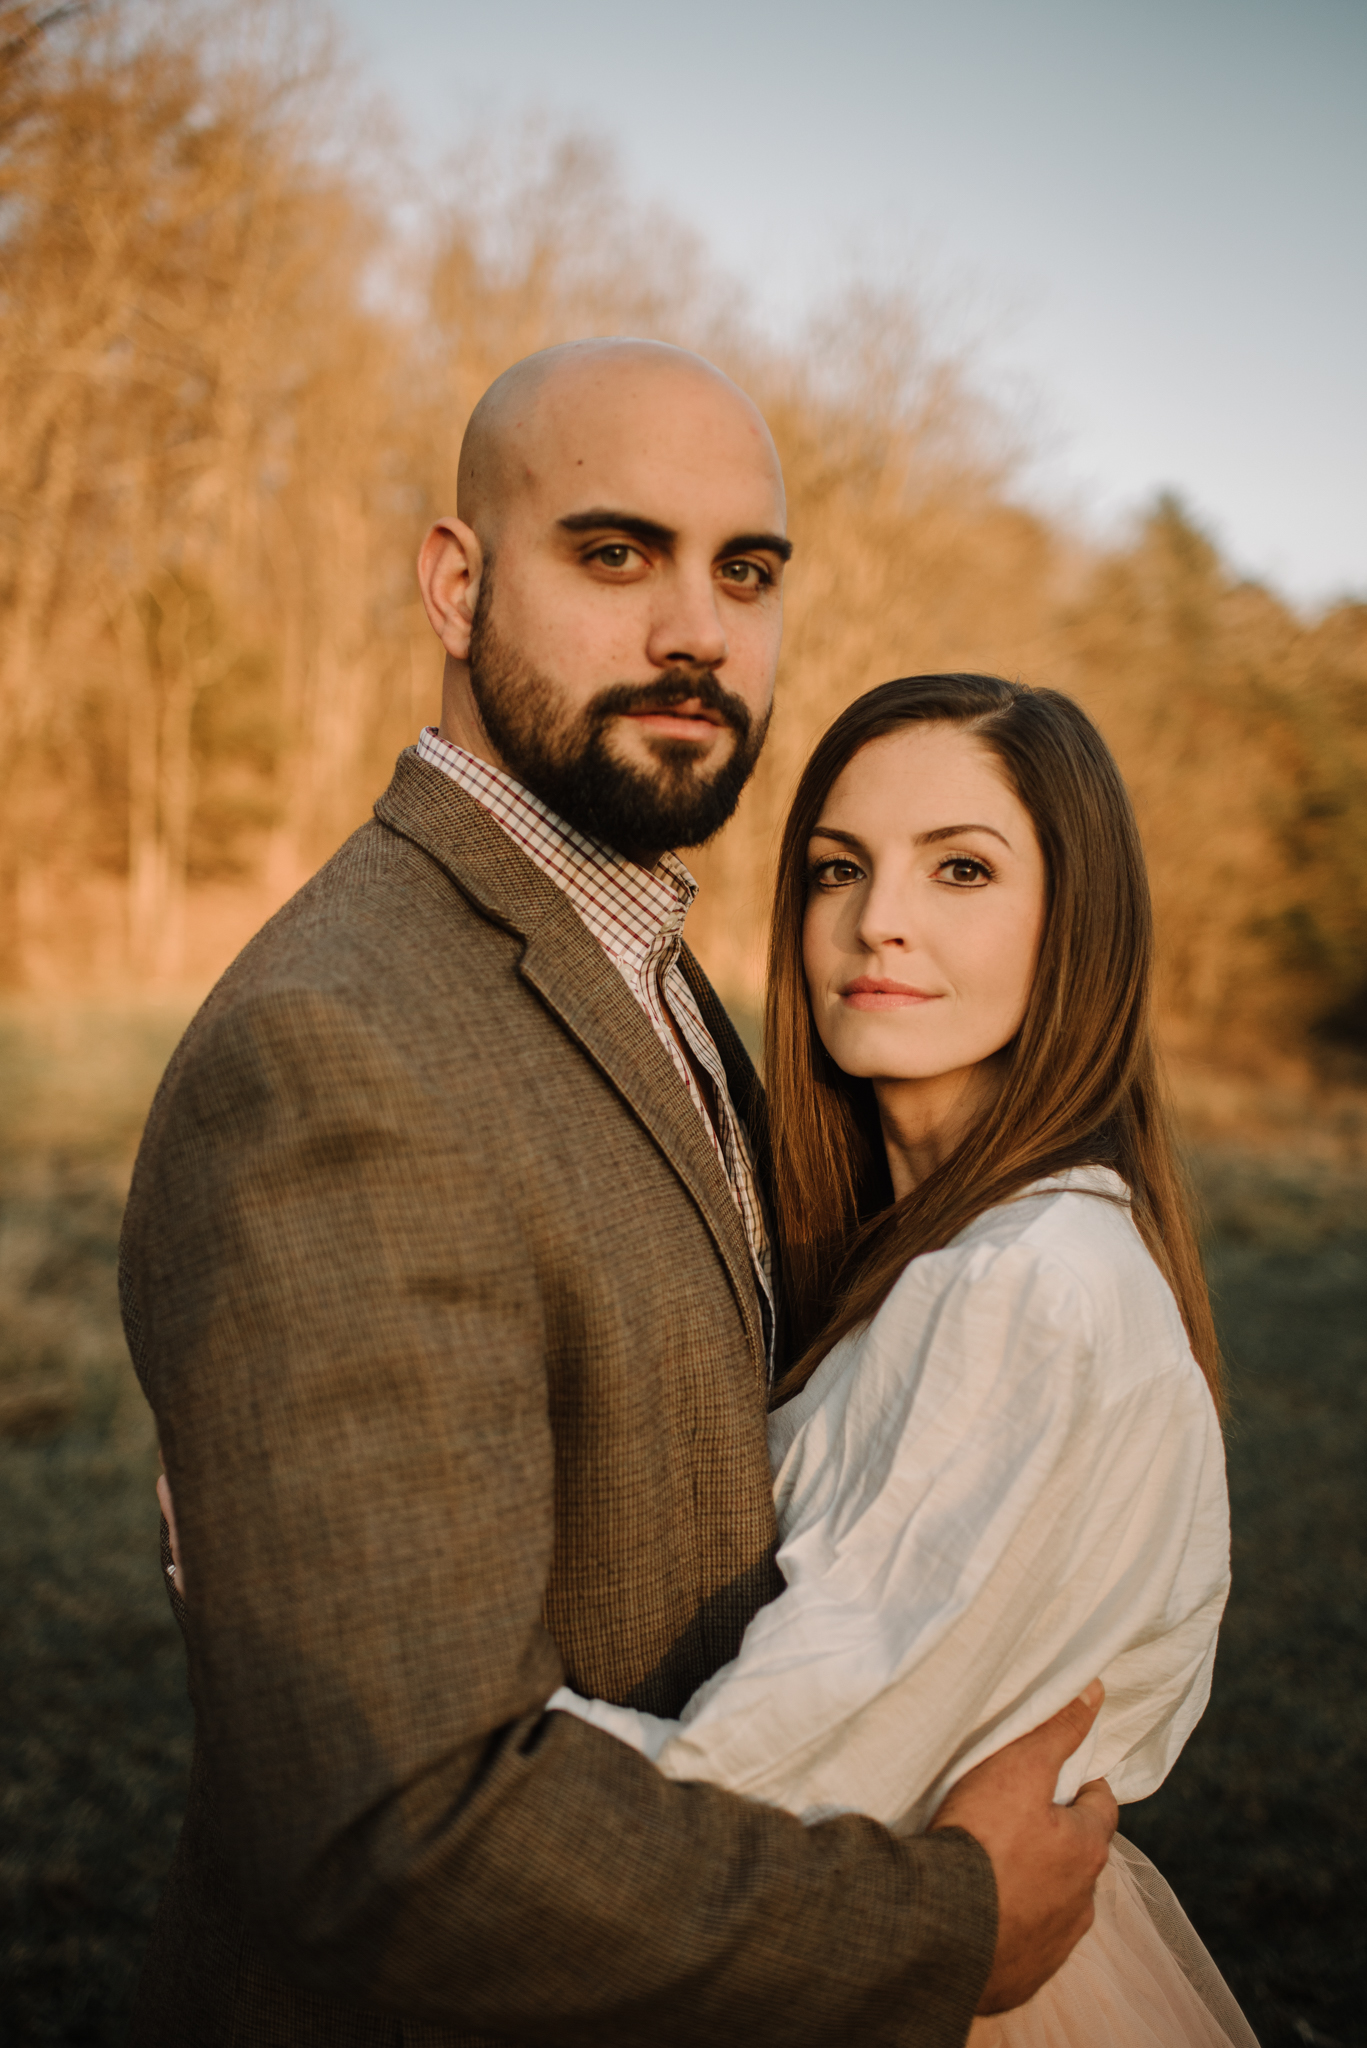 Emily and Hoyle - Shenandoah Valley Engagement Session - Winter Sunset - Downtown Old Movie Theater - Back yard Virginia Farm Wedding_19.JPG